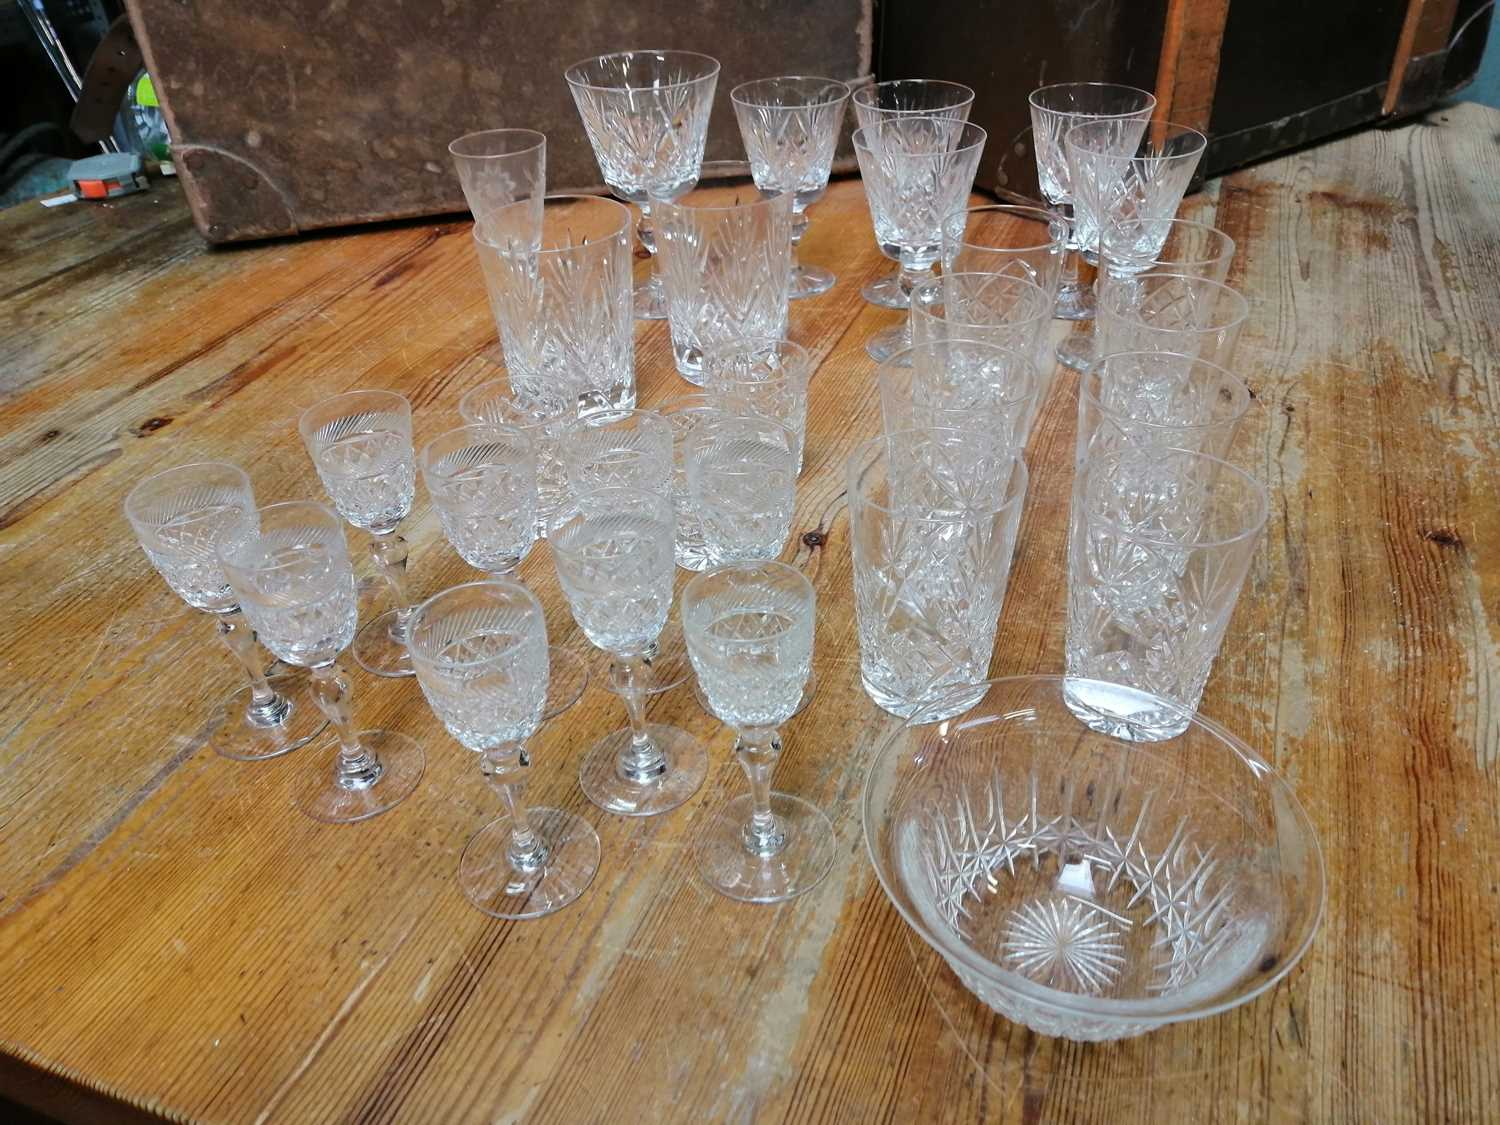 Lot 9 - Cut glass drinking glassware and other cut glass.